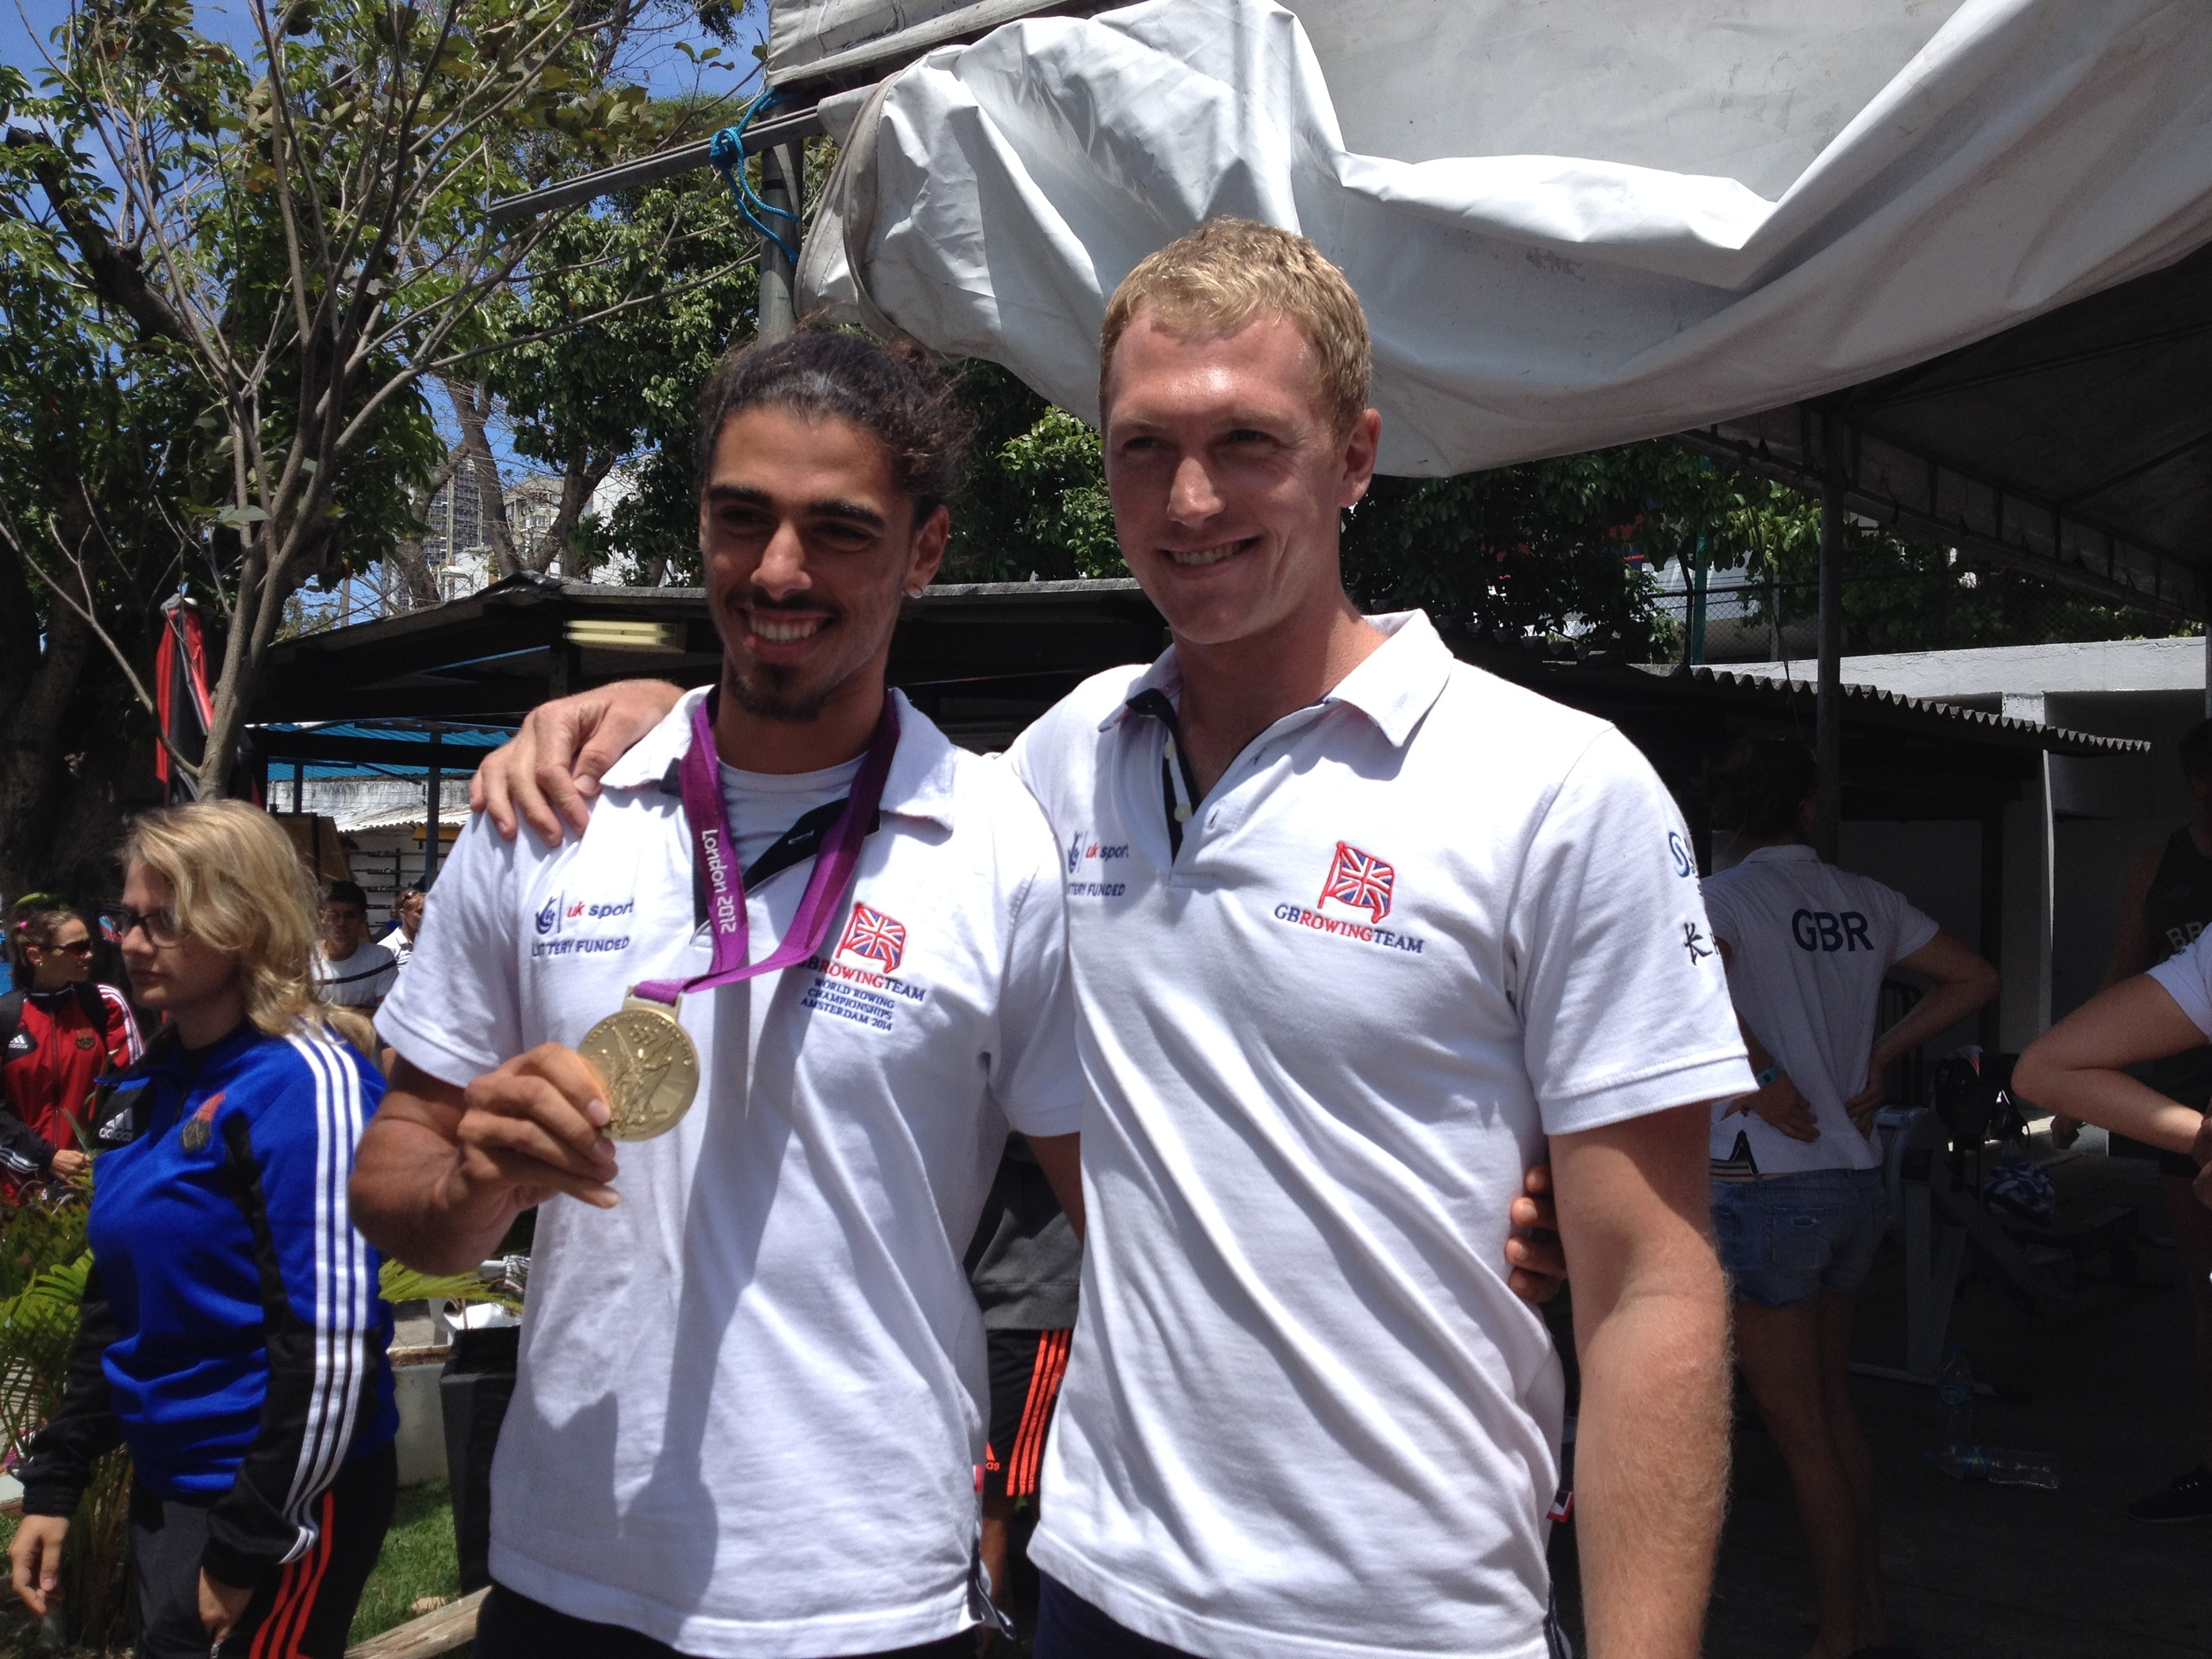 My Brazilian friend with my medal - he'll be racing for one of those on his lake in 2016!